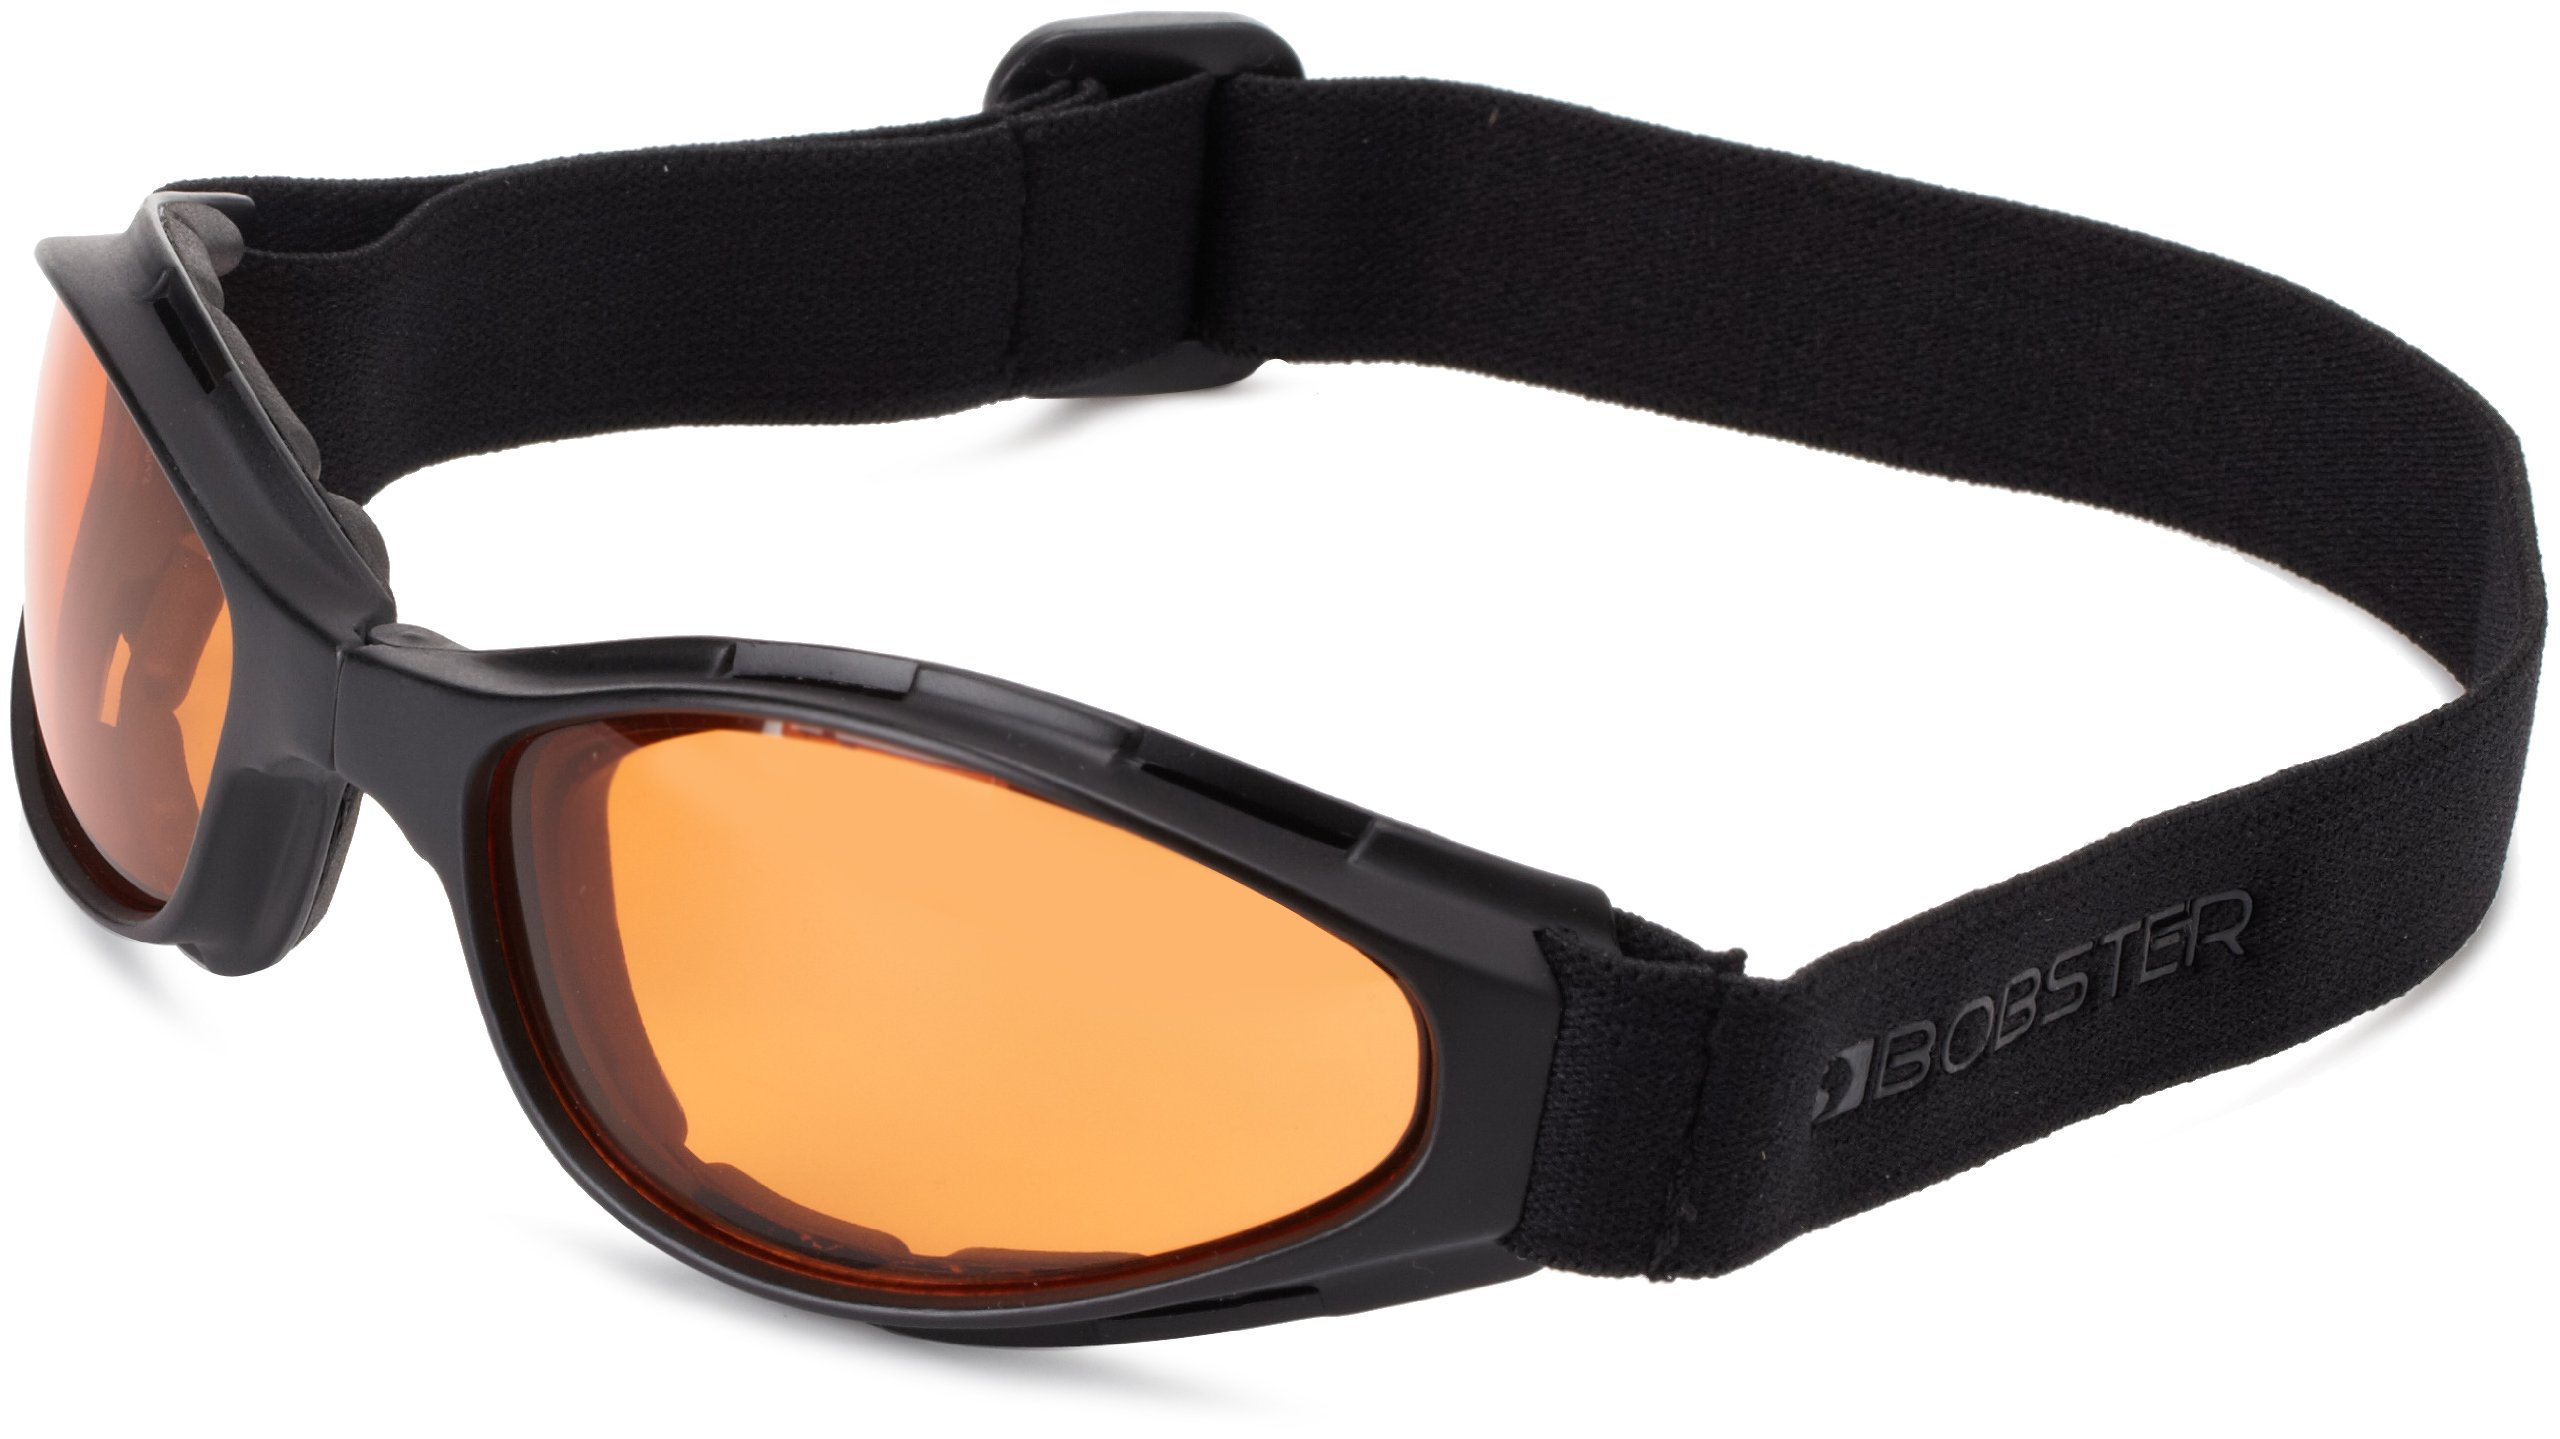 Bobster Crossfire Small Folding Goggles, Black Frame/Amber Anti-Fog Lens